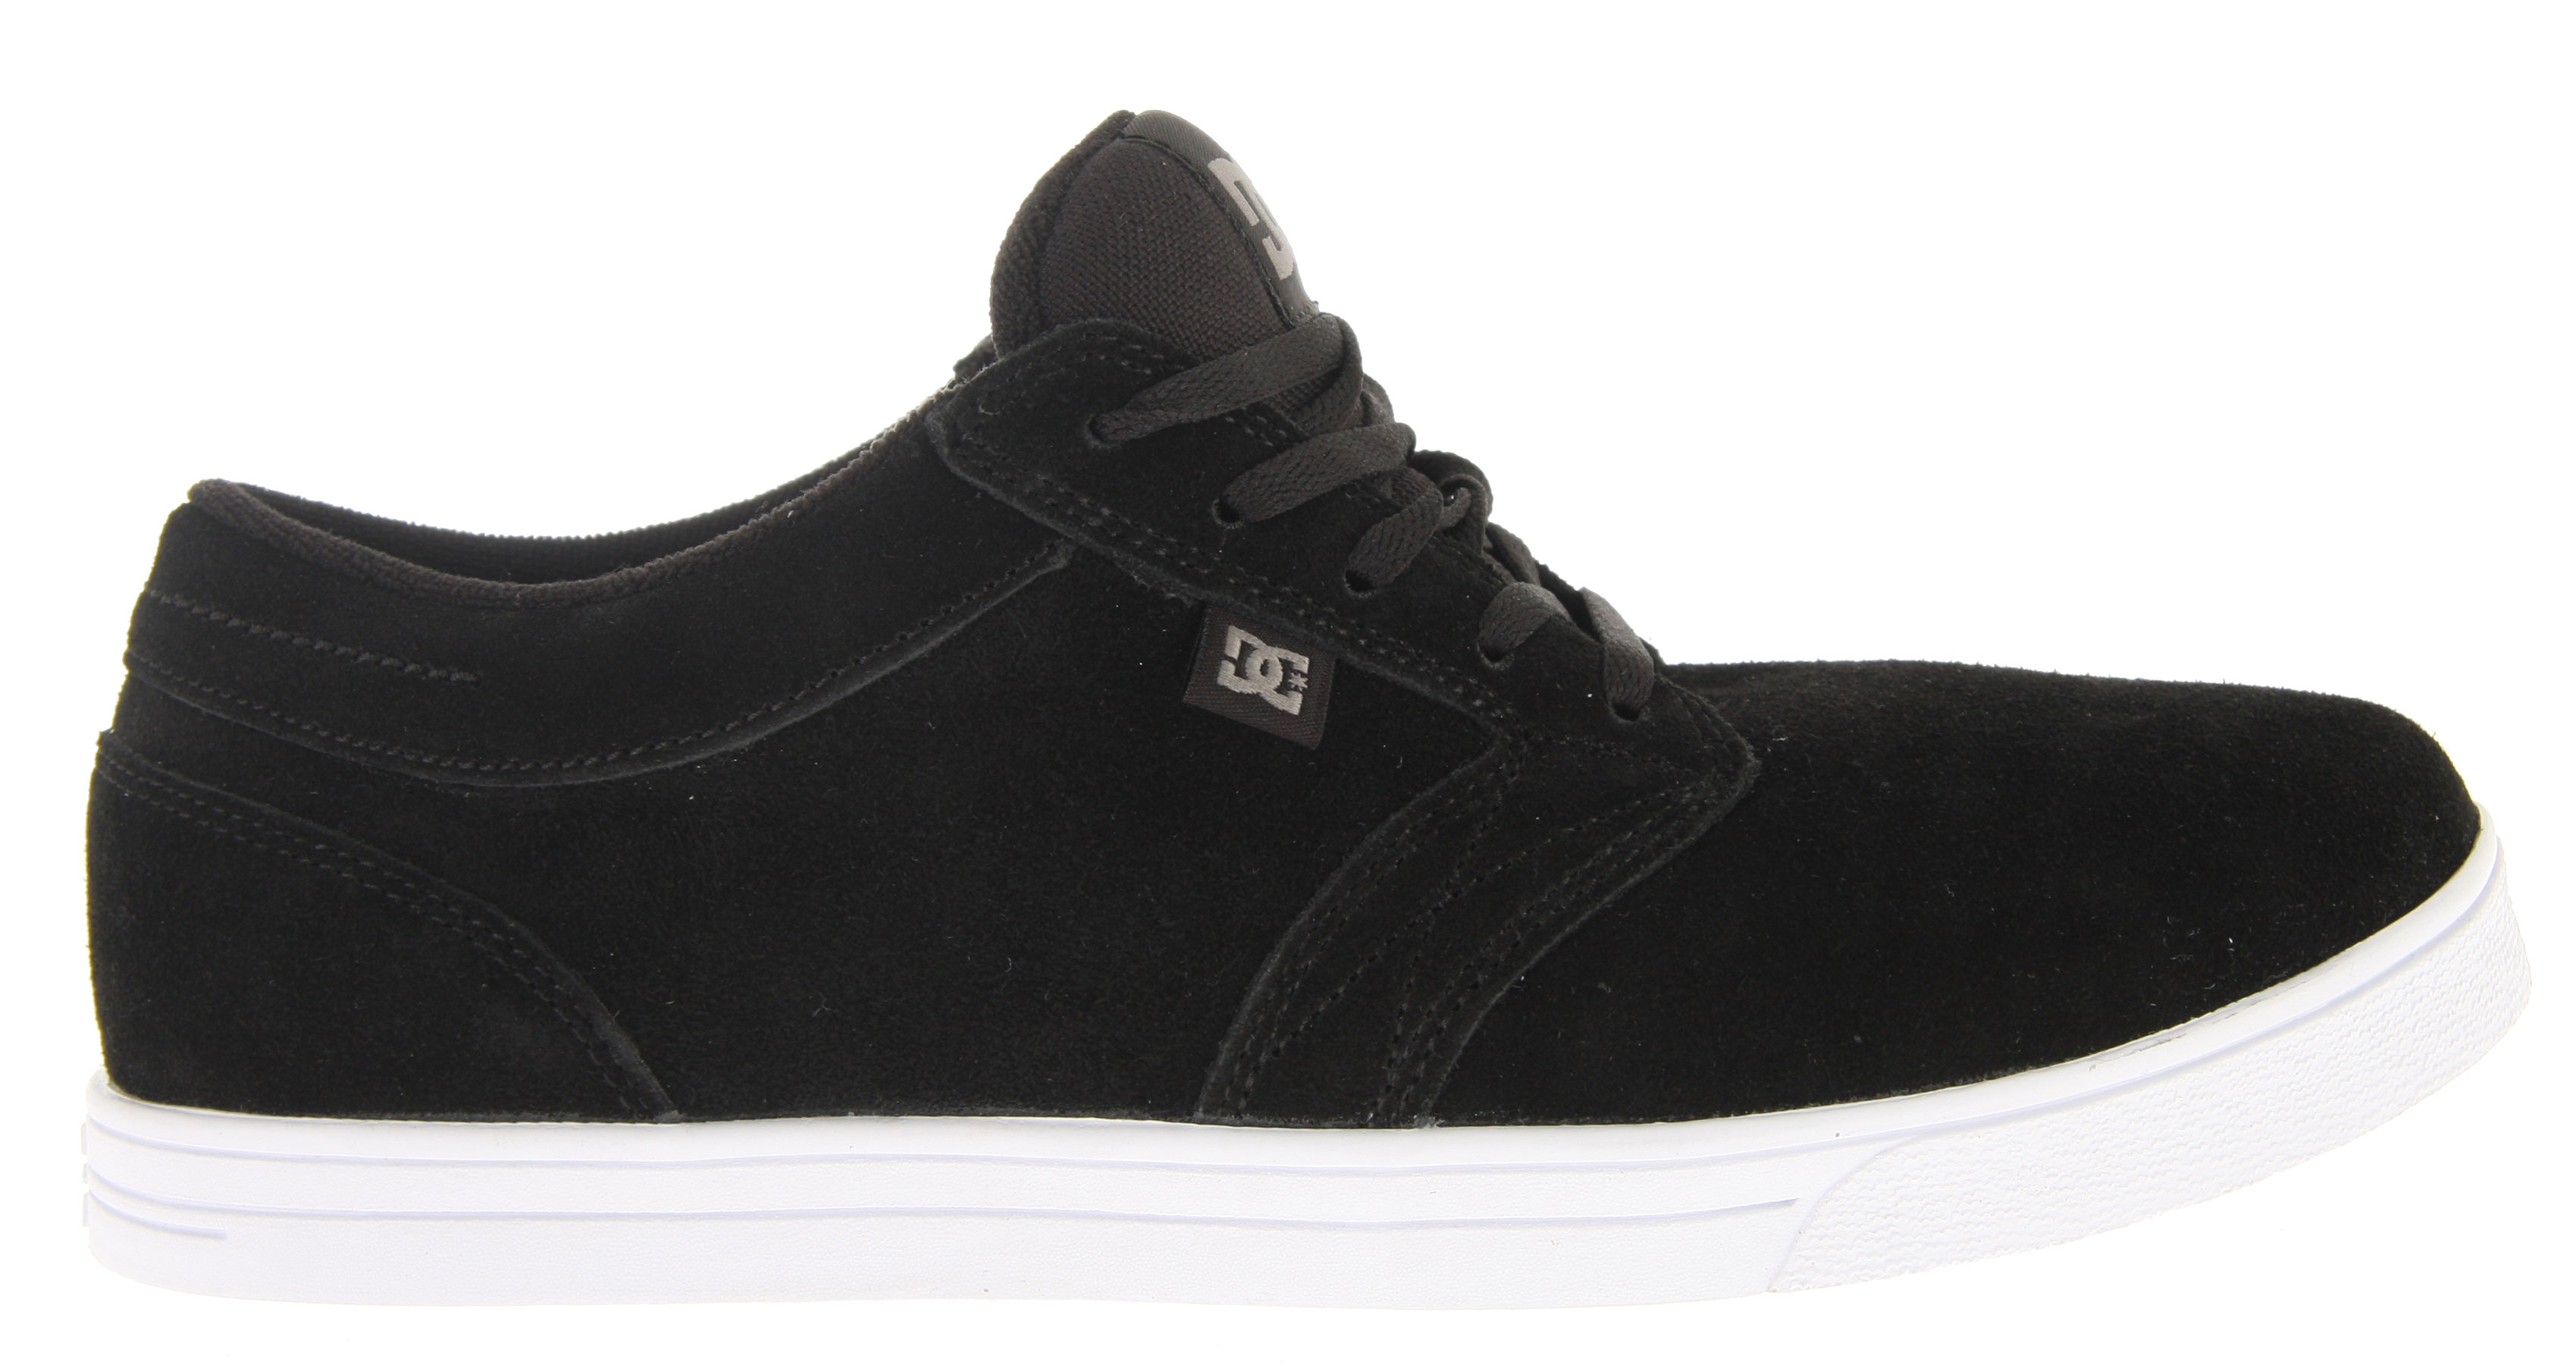 Skateboard Key Features of the DC Range Skate Shoes: Textile upper Vent holes Vulcanized construction DC's drop in cushion system Abrasion resistant sticky rubber outsole - $35.95